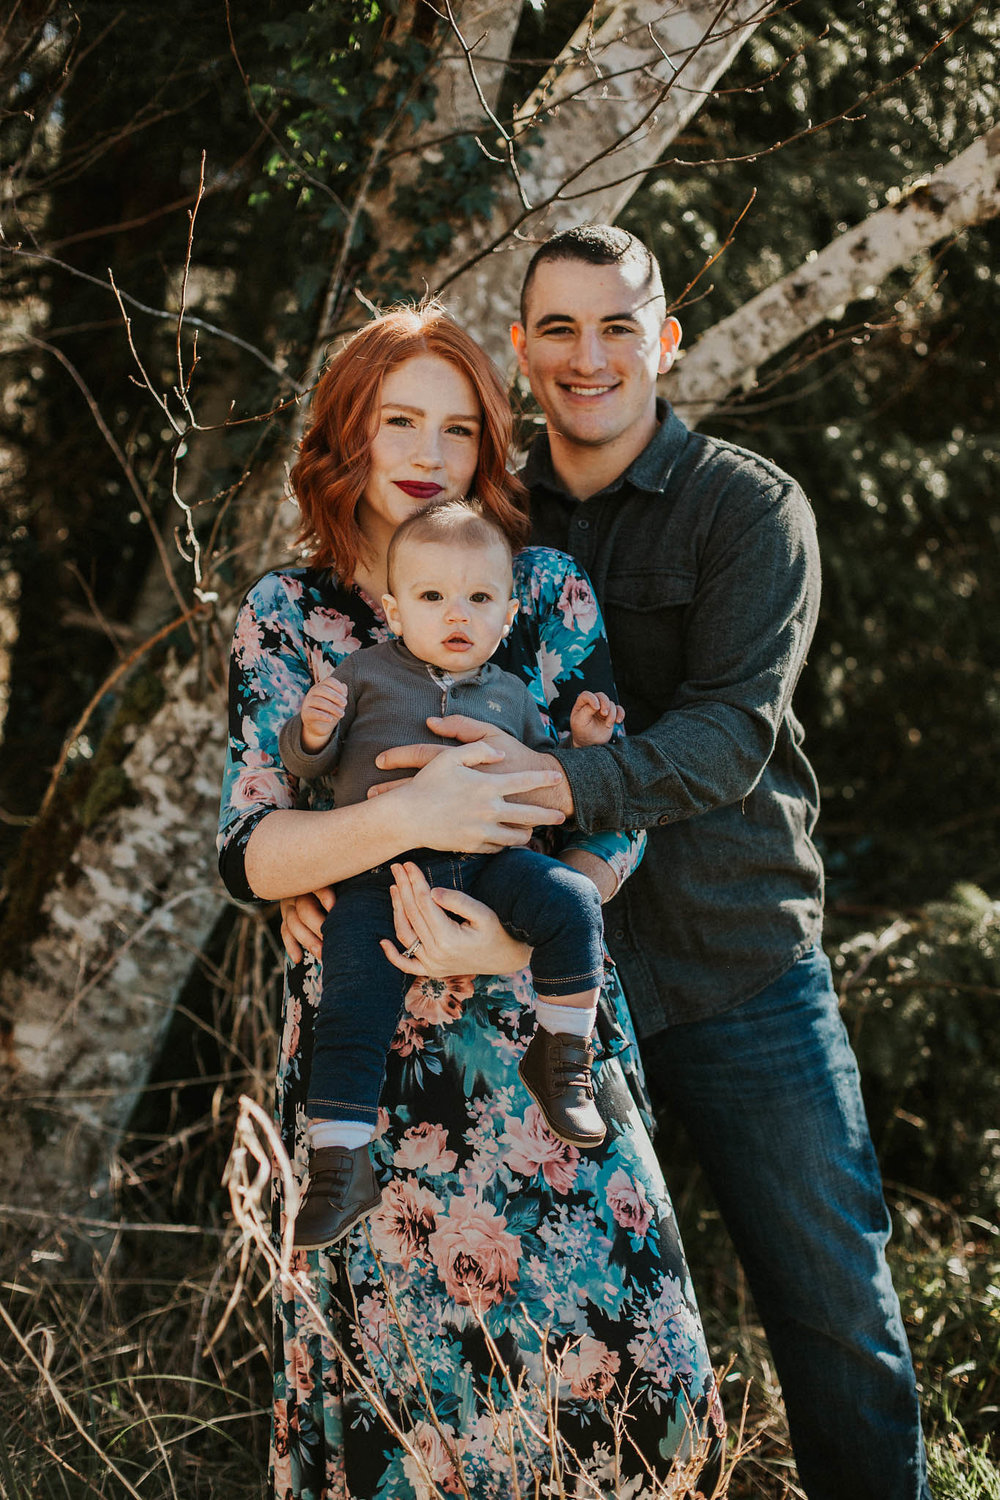 About us - My name is Kelly Lewis, this is my hubby Keith and our son Kingsley. This blog is just a fun hobby for me to share the things I love – Real & honest mom stories, family adventures, our journey through this thing called adult/parenthood, new experiences, life with Keith, and whatever else interests me. I hope this blog inspires you to have a positive outlook on life and adventure often! If you'd like to know more click here